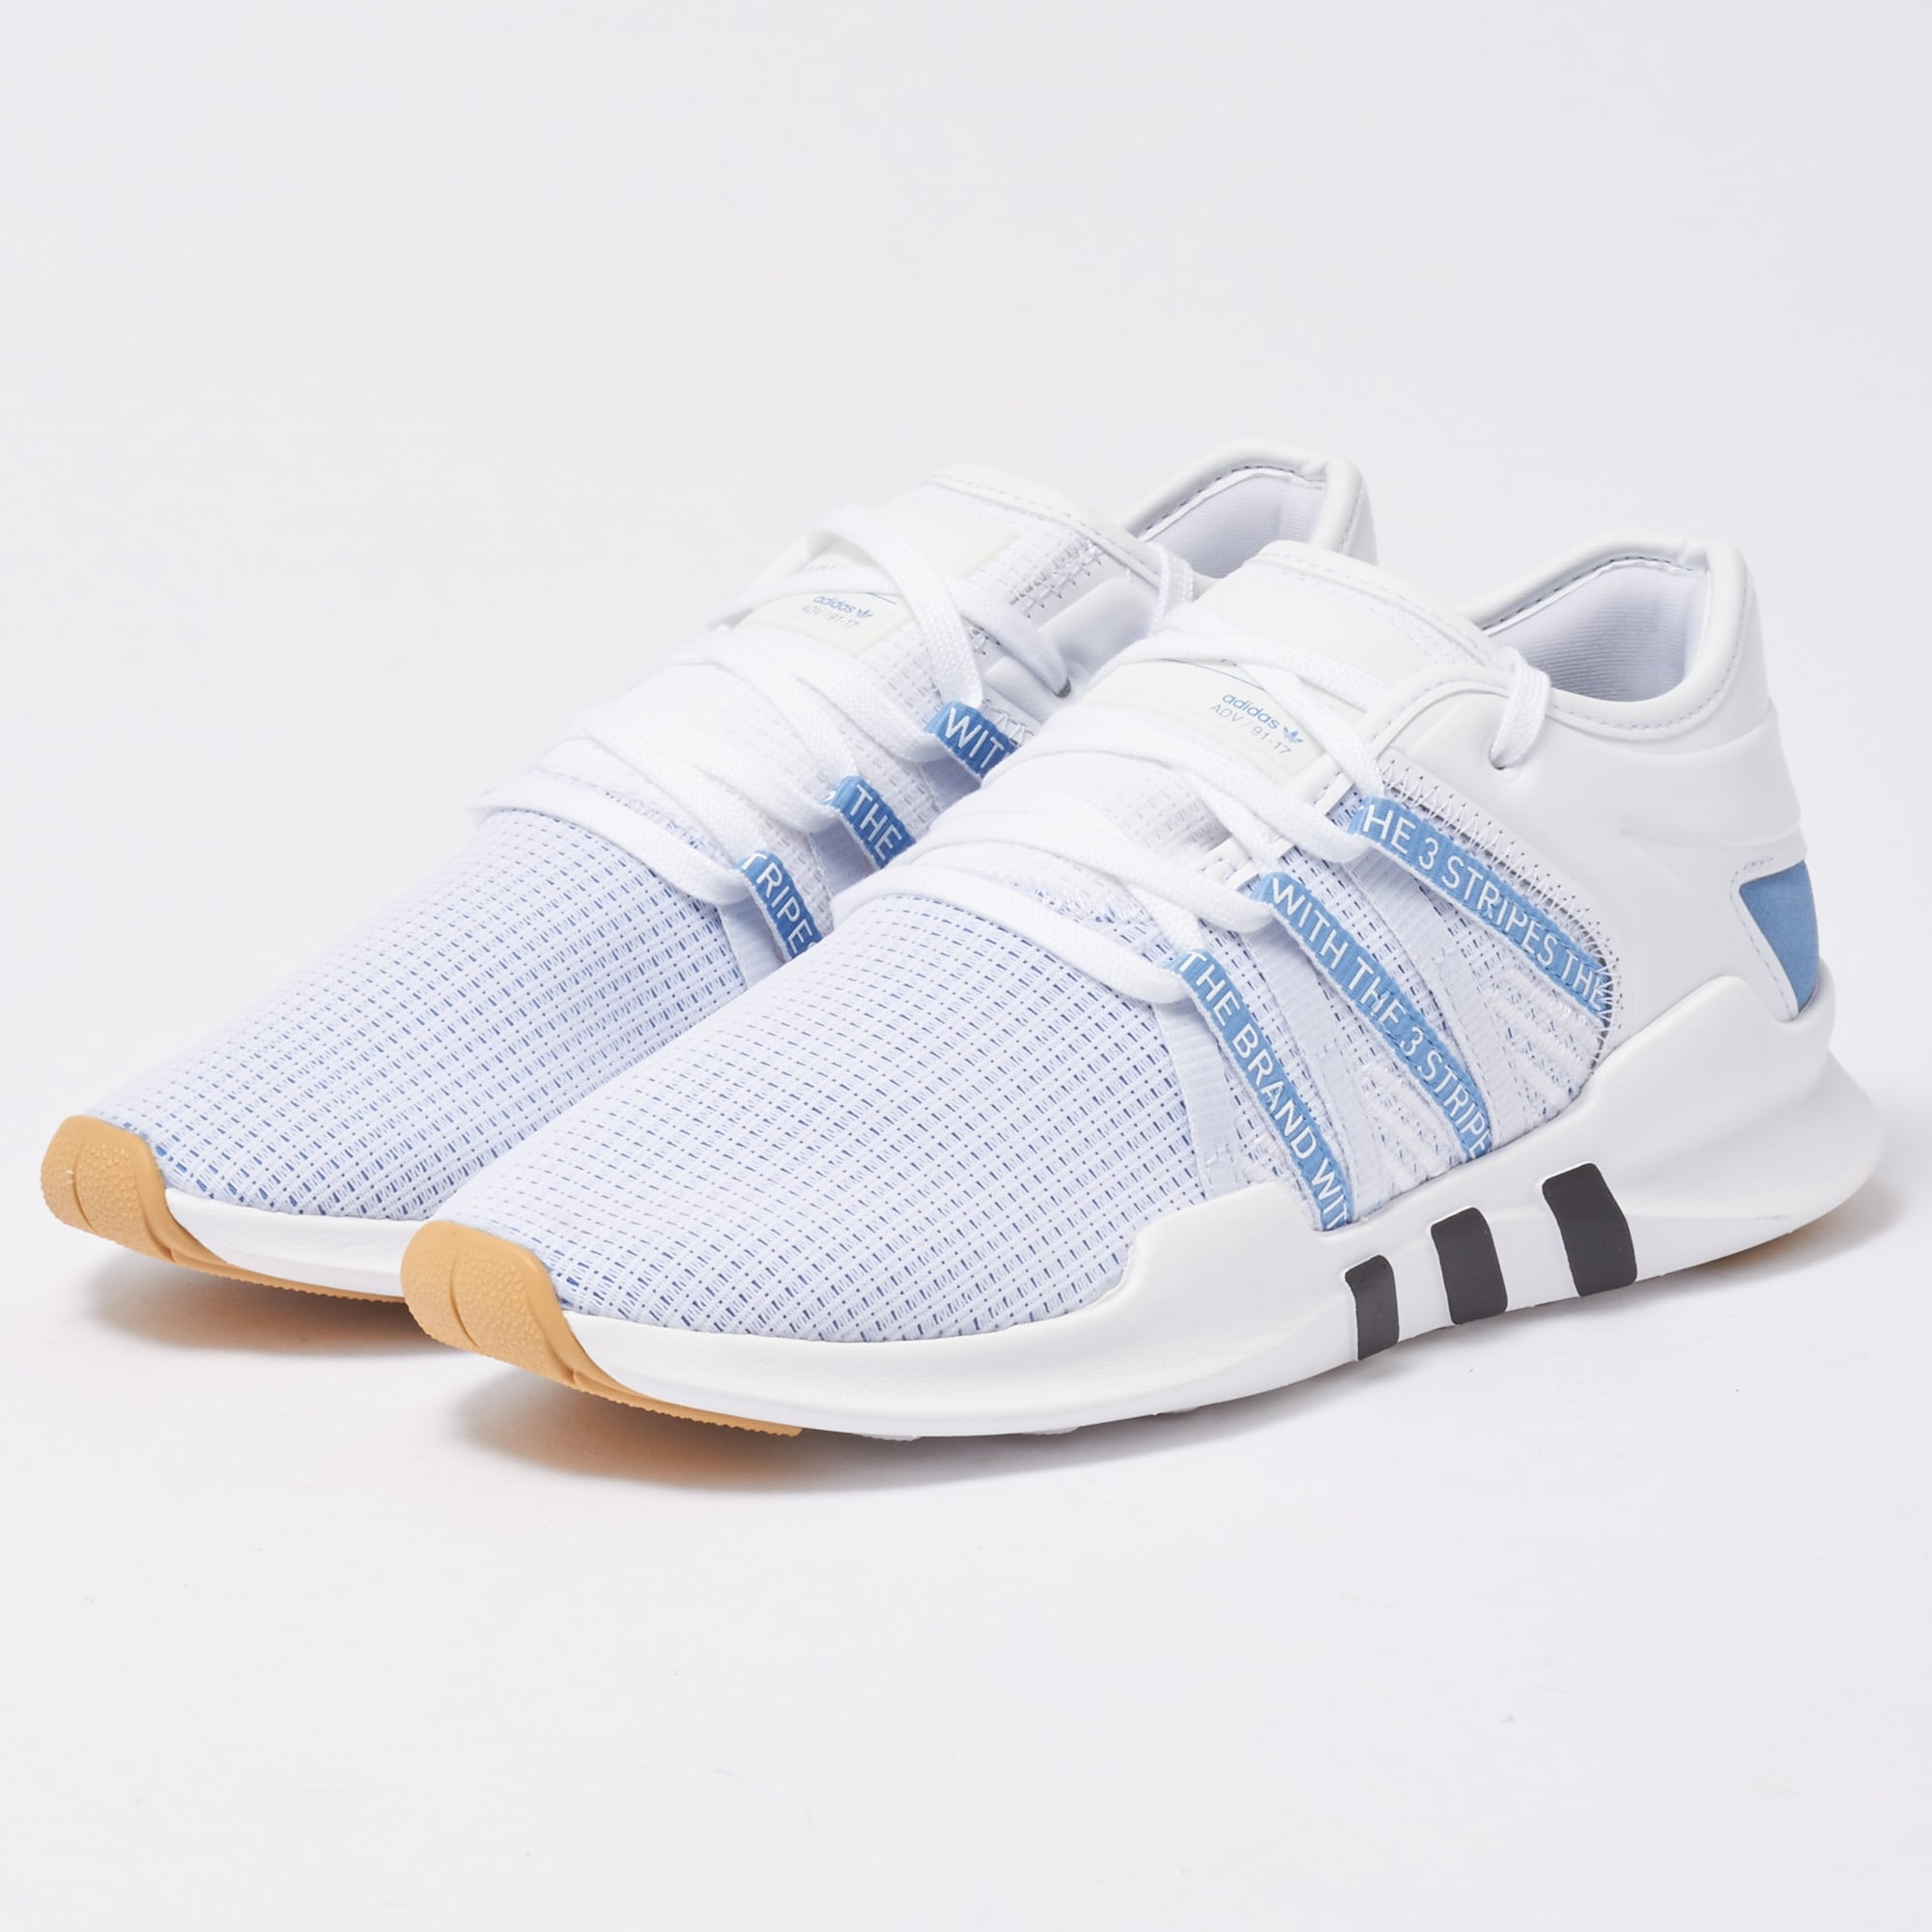 online store ecb2b b15d5 Adidas White  Ash Blue EQT ADV Racing Shoes W CQ2155  US sto